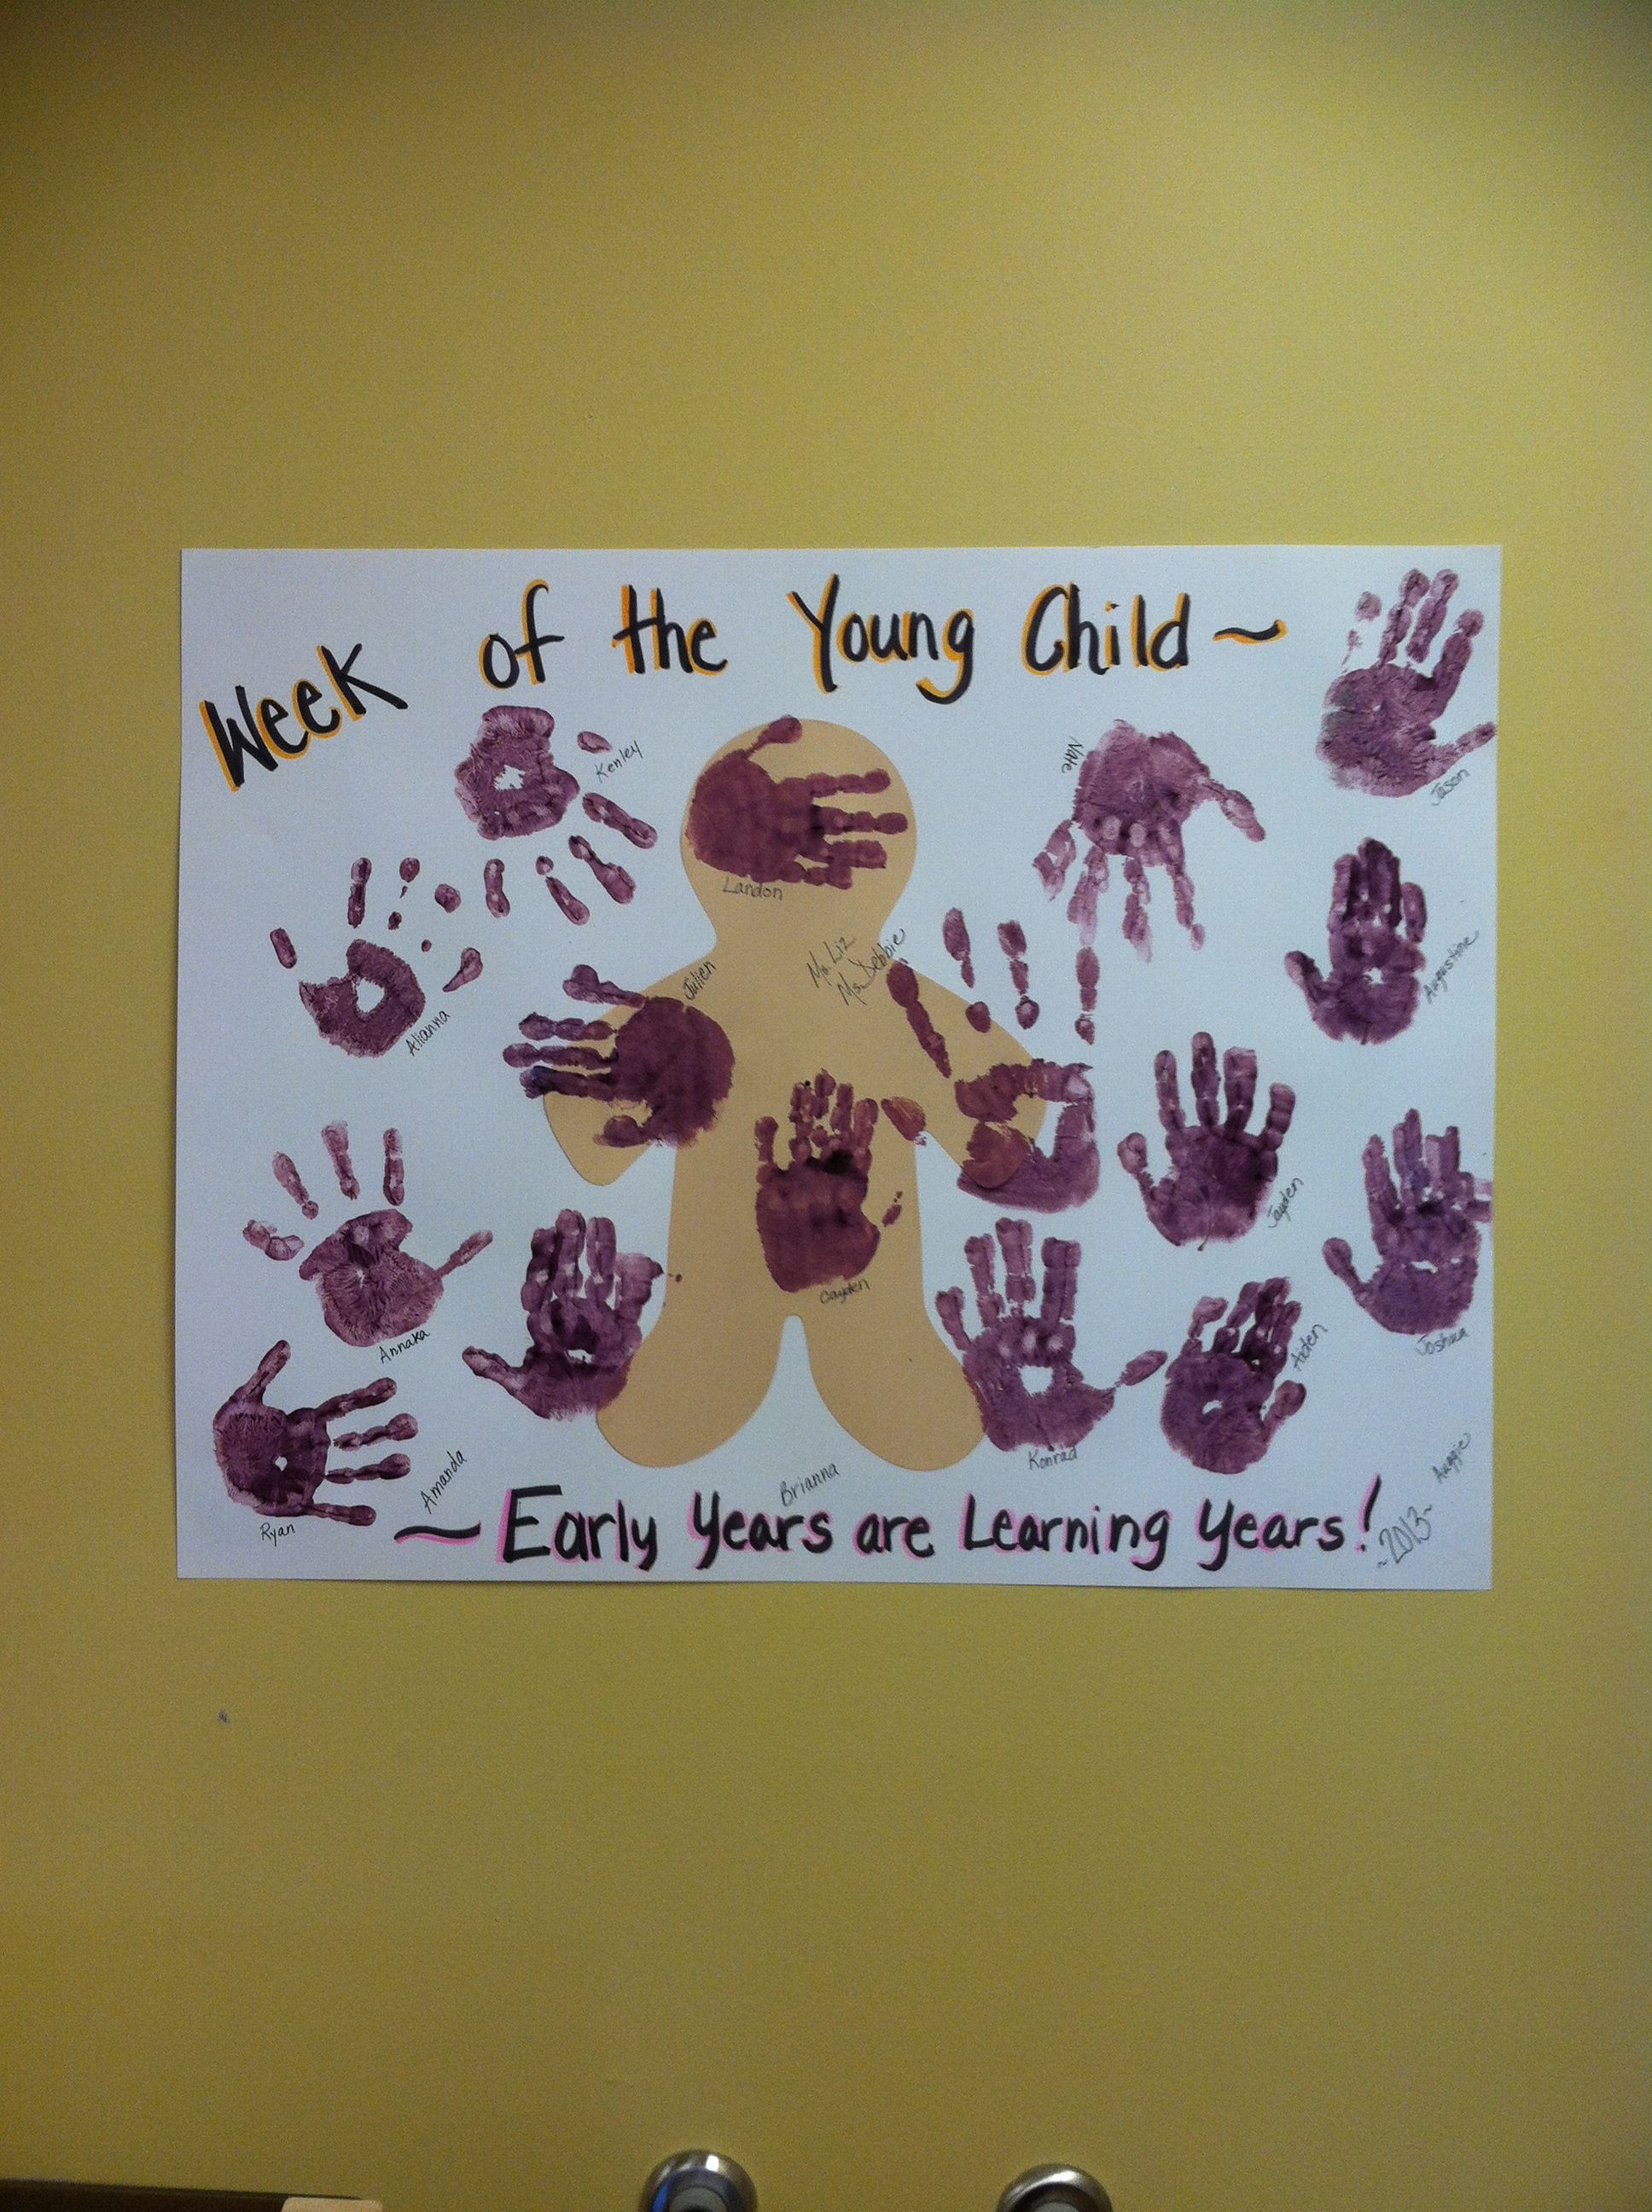 Week Of Young Child Poster Children. Printed Words And Glued Cut